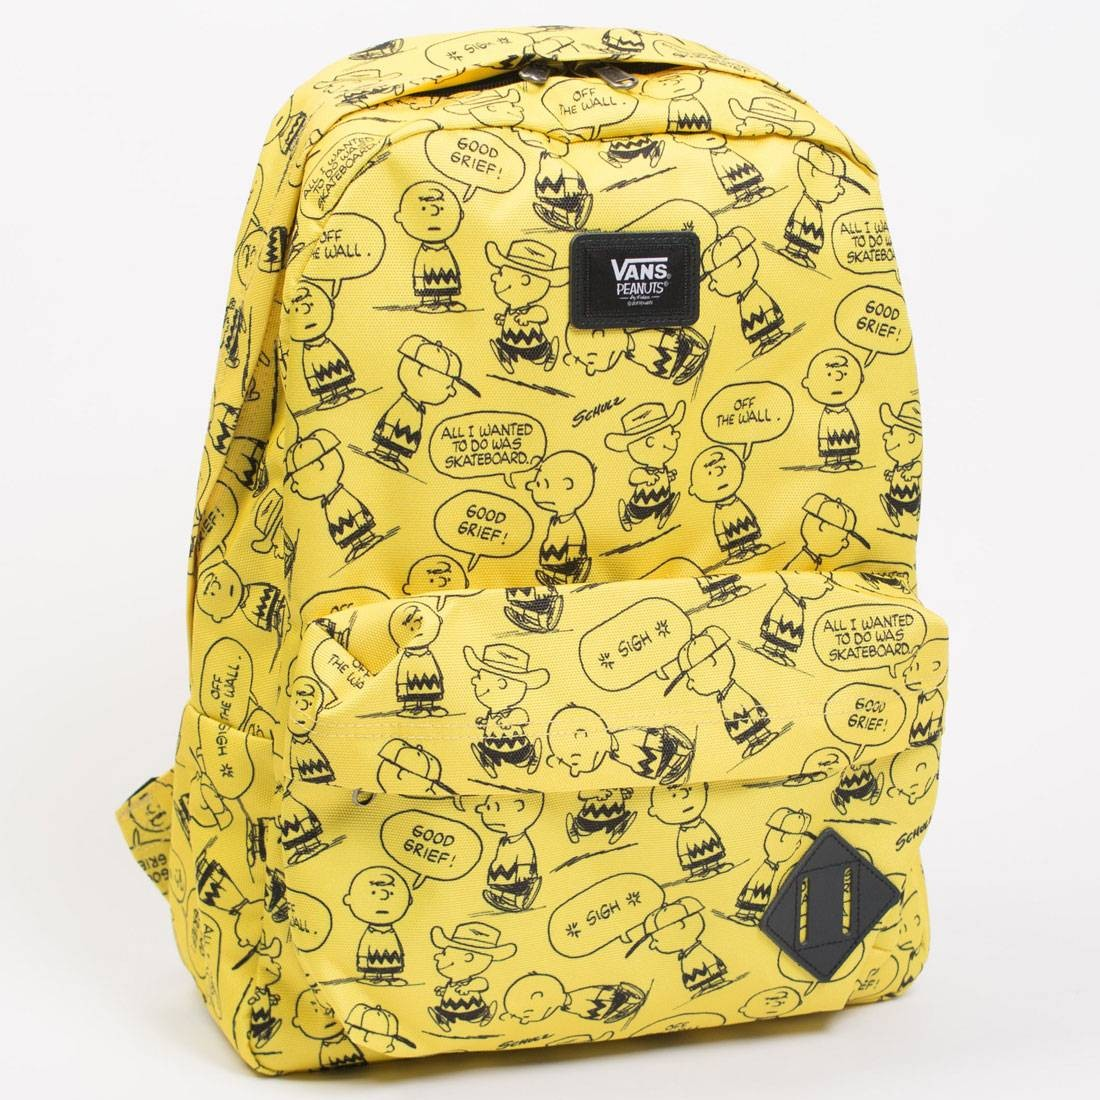 5e01f6df4f Vans x Snoopy Peanuts Old Skool II Backpack yellow black